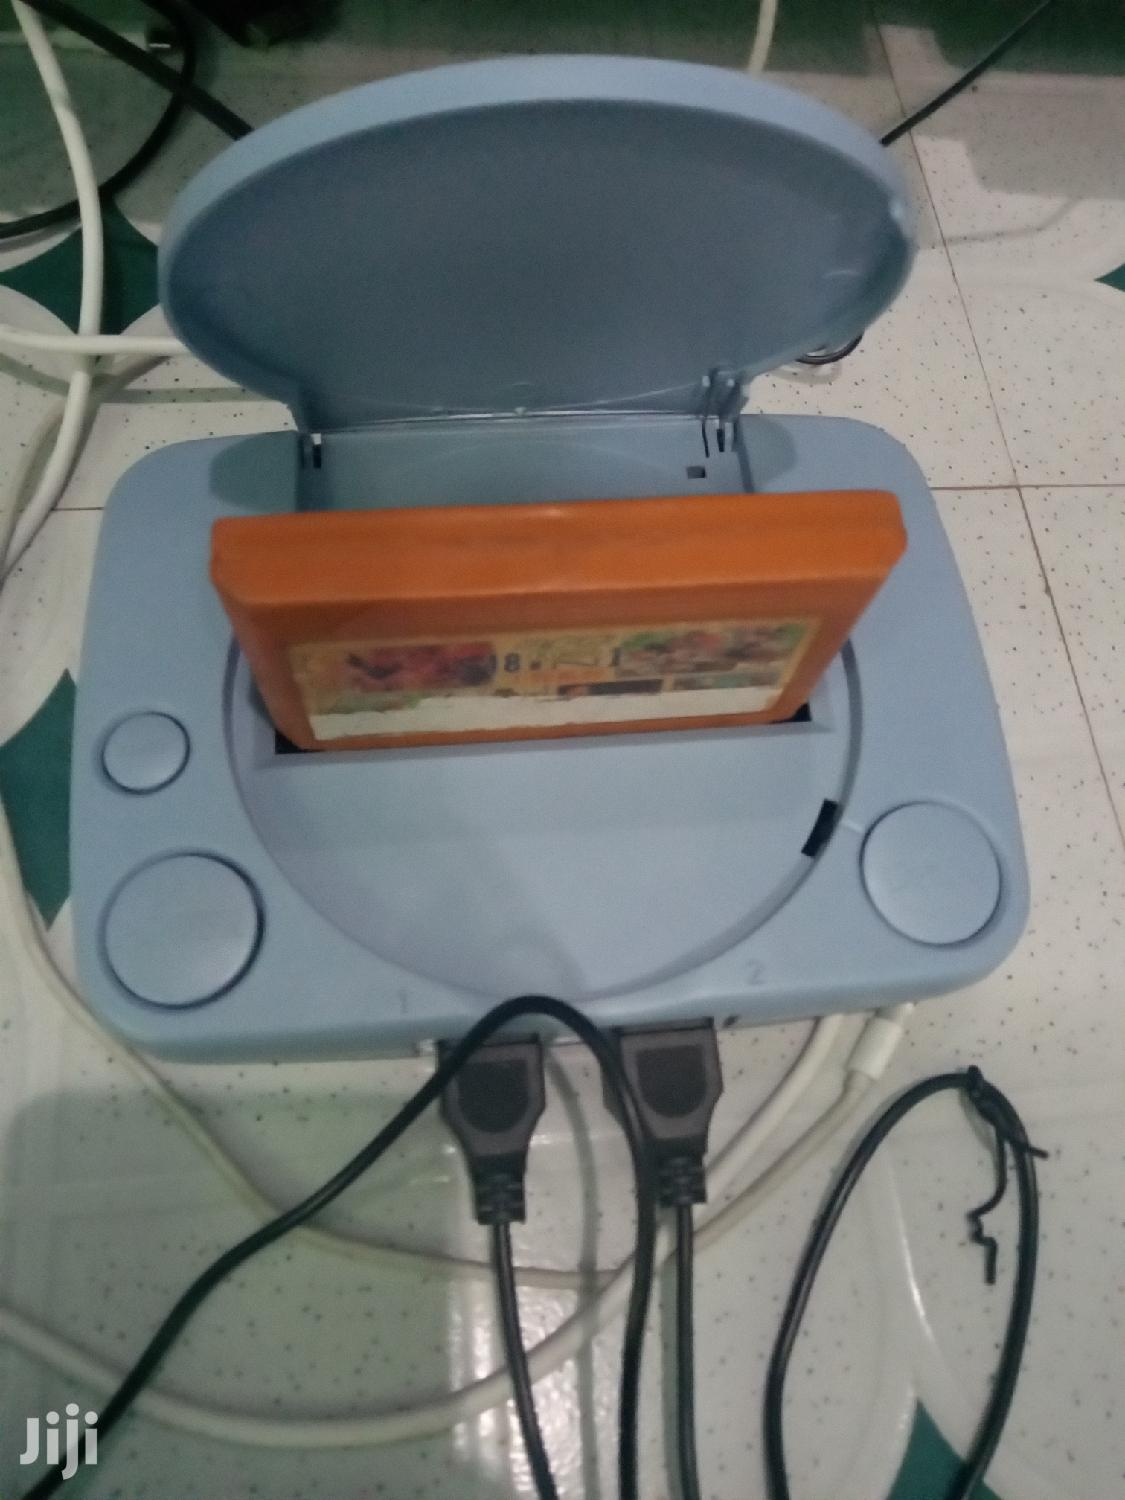 Nitando Console | Video Game Consoles for sale in Tamale Municipal, Northern Region, Ghana